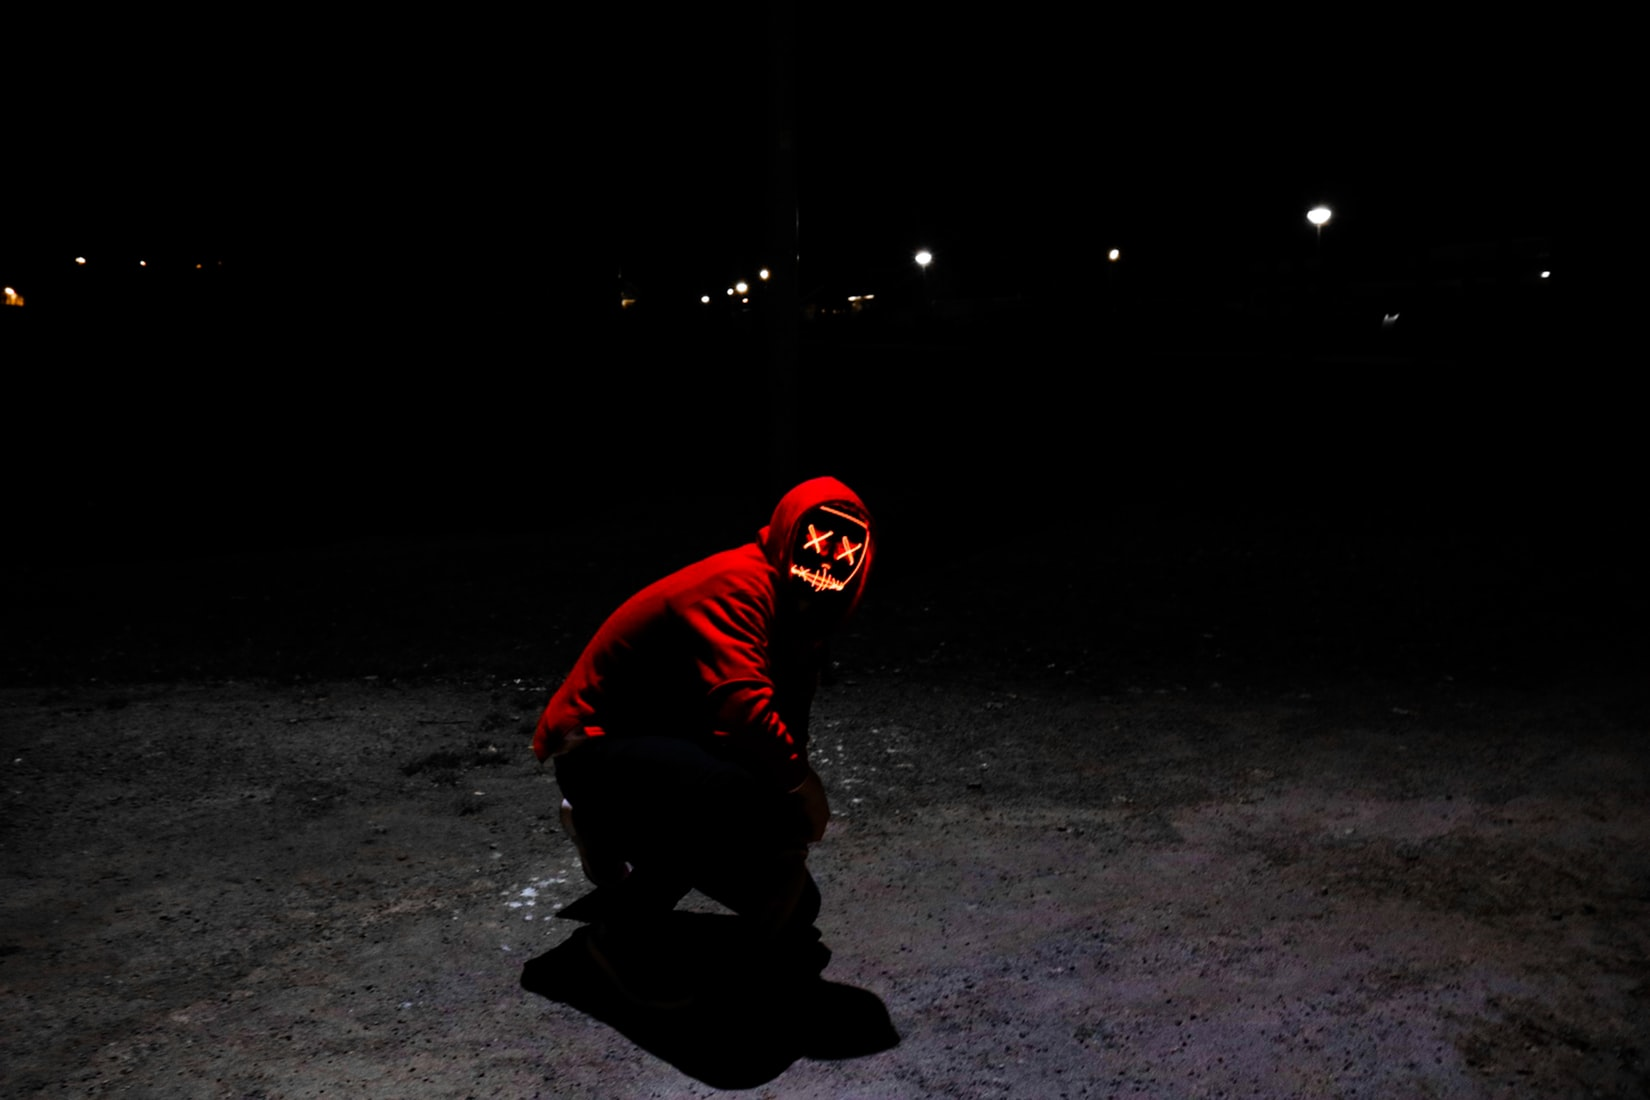 Psychotic man wearing red hoodie with mask squatting on pavement